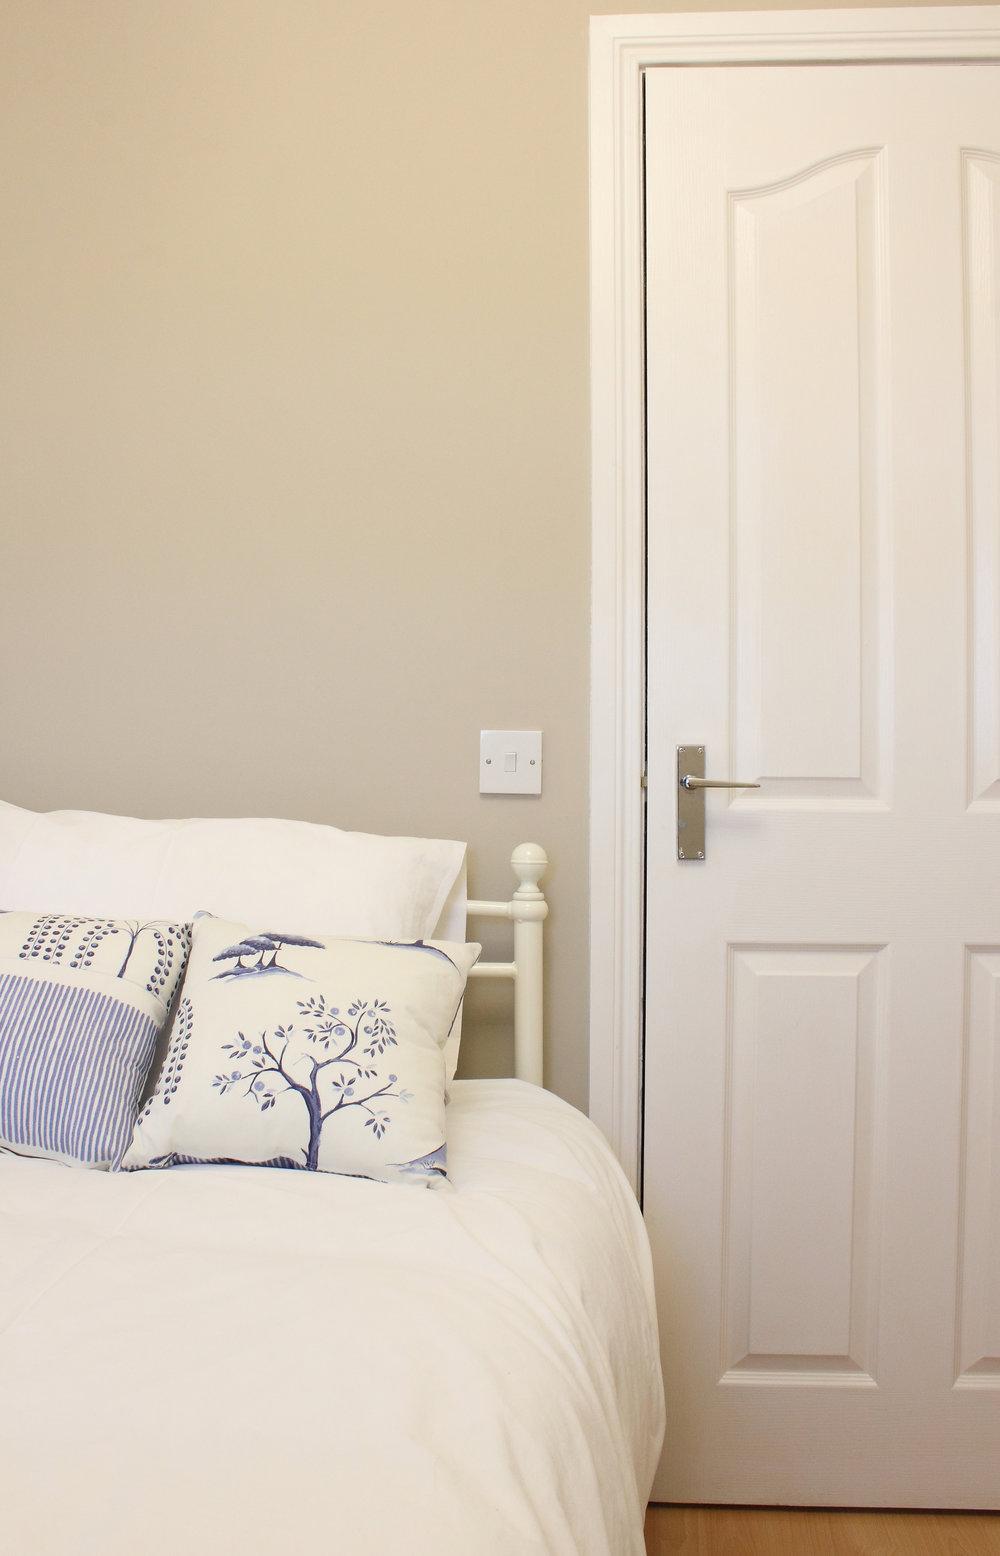 Luxury Self Catering Apartment Dungannon Co Tyrone